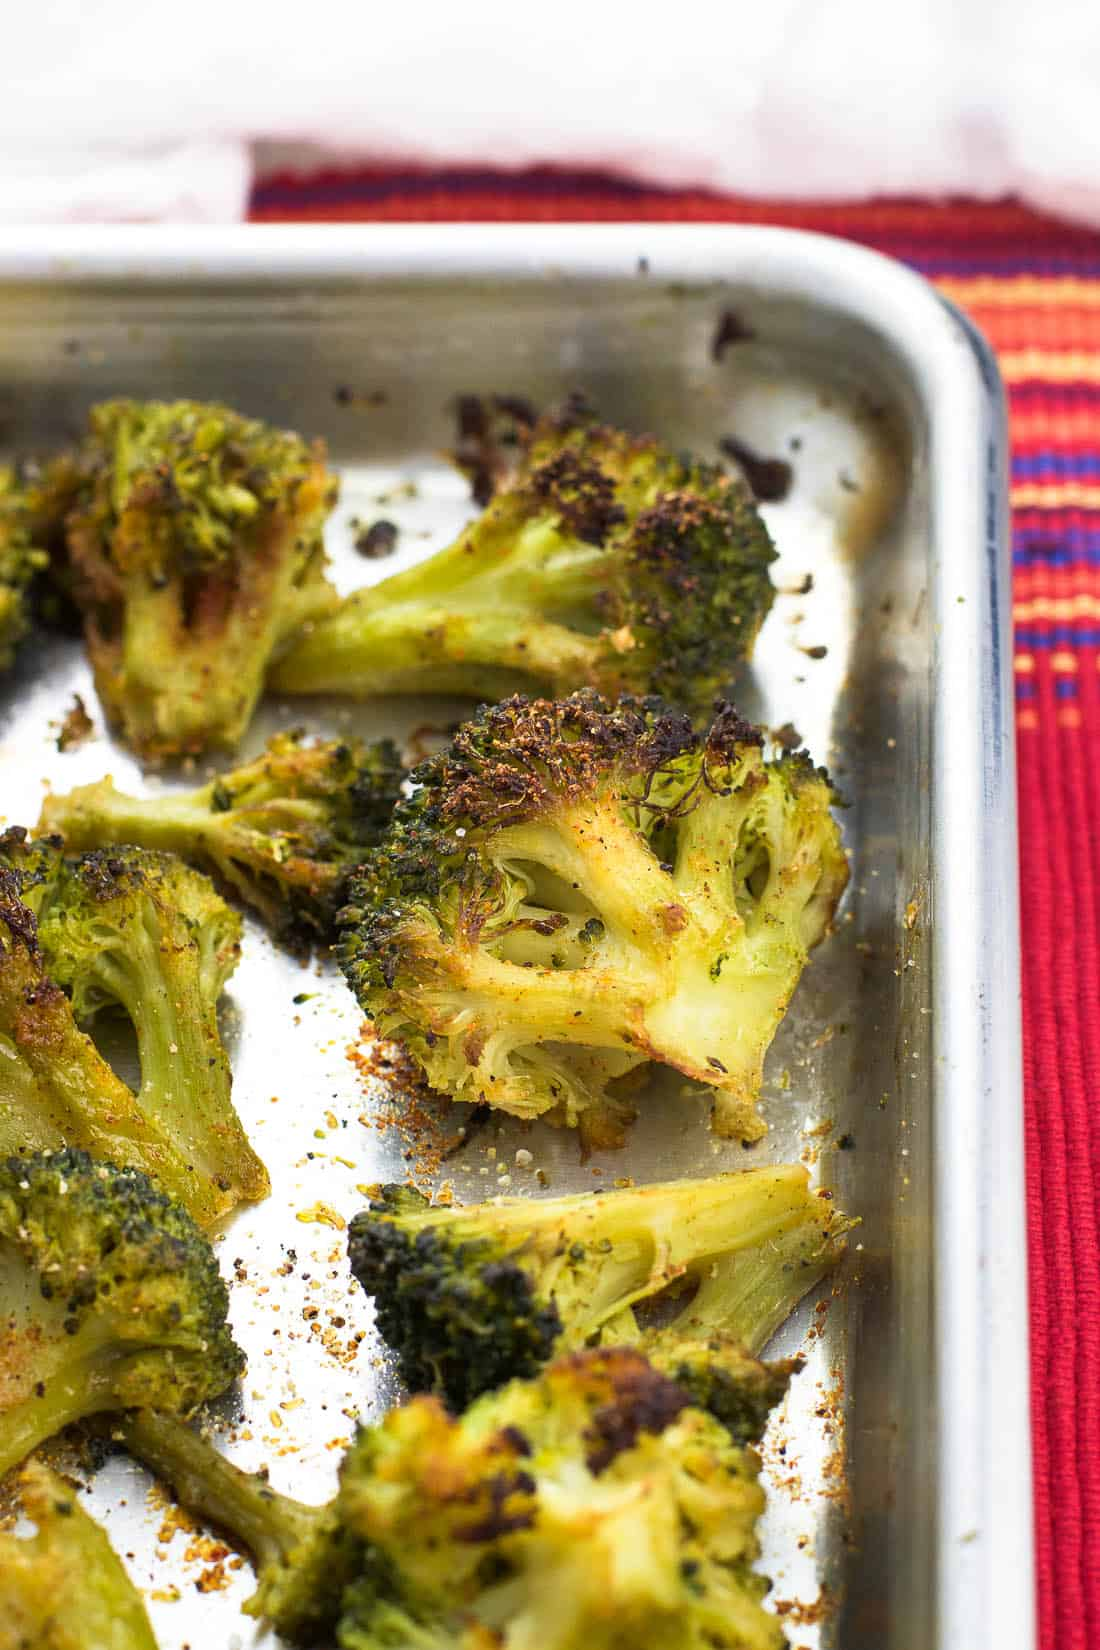 Garlic roasted broccoli with cajun spices is a healthy side dish made even easier by using frozen broccoli. There's no need for thawing in this simple side dish!